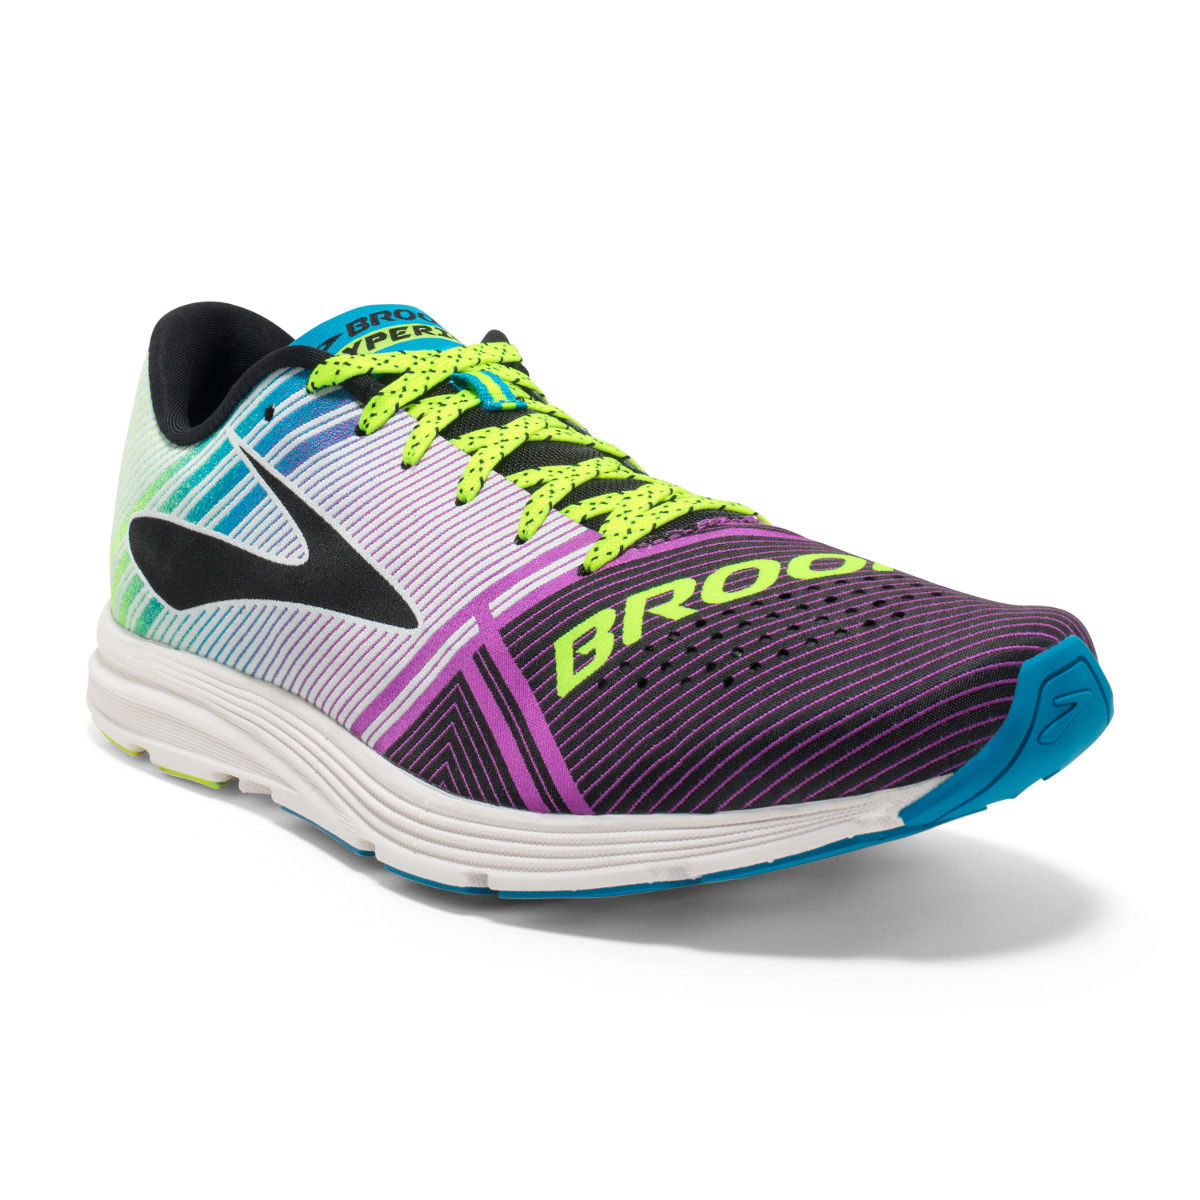 SCARPA RUNNING BROOKS HYPERION WOMEN 529.jpg